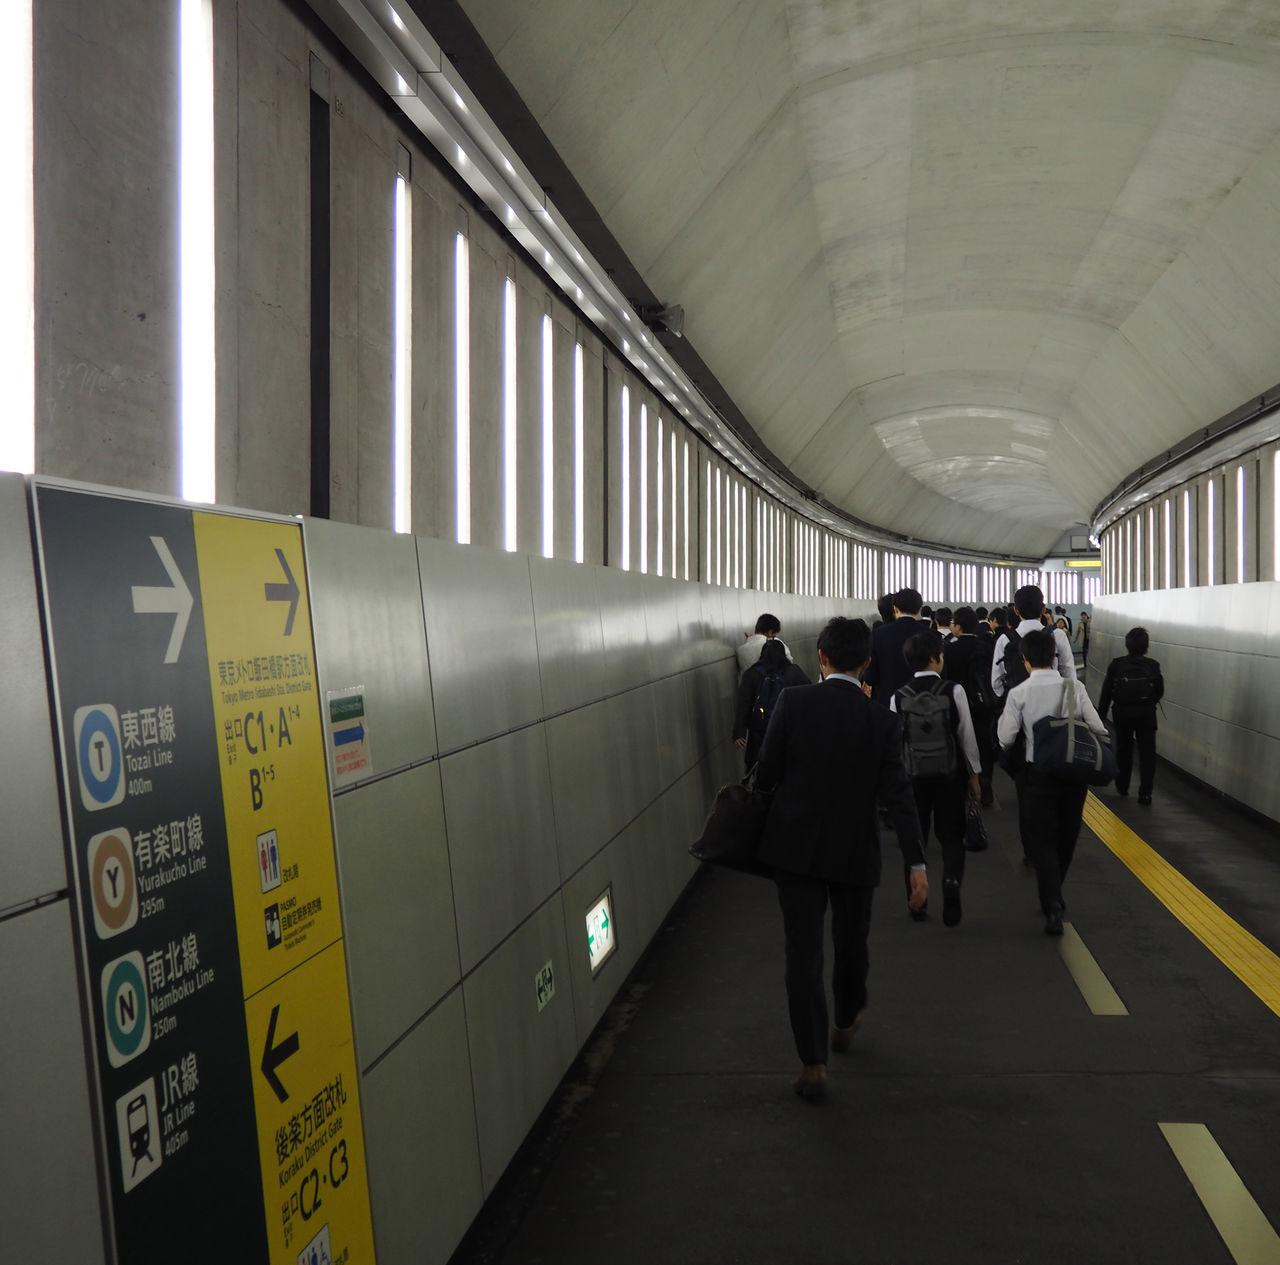 Adult Adults Only After School Big Brother - Orwellian Concept Commuting Day Full Length Going To School Indoors  Japan Japanese Culture Men Modern Only Men People School Uniform Tokyo Subway